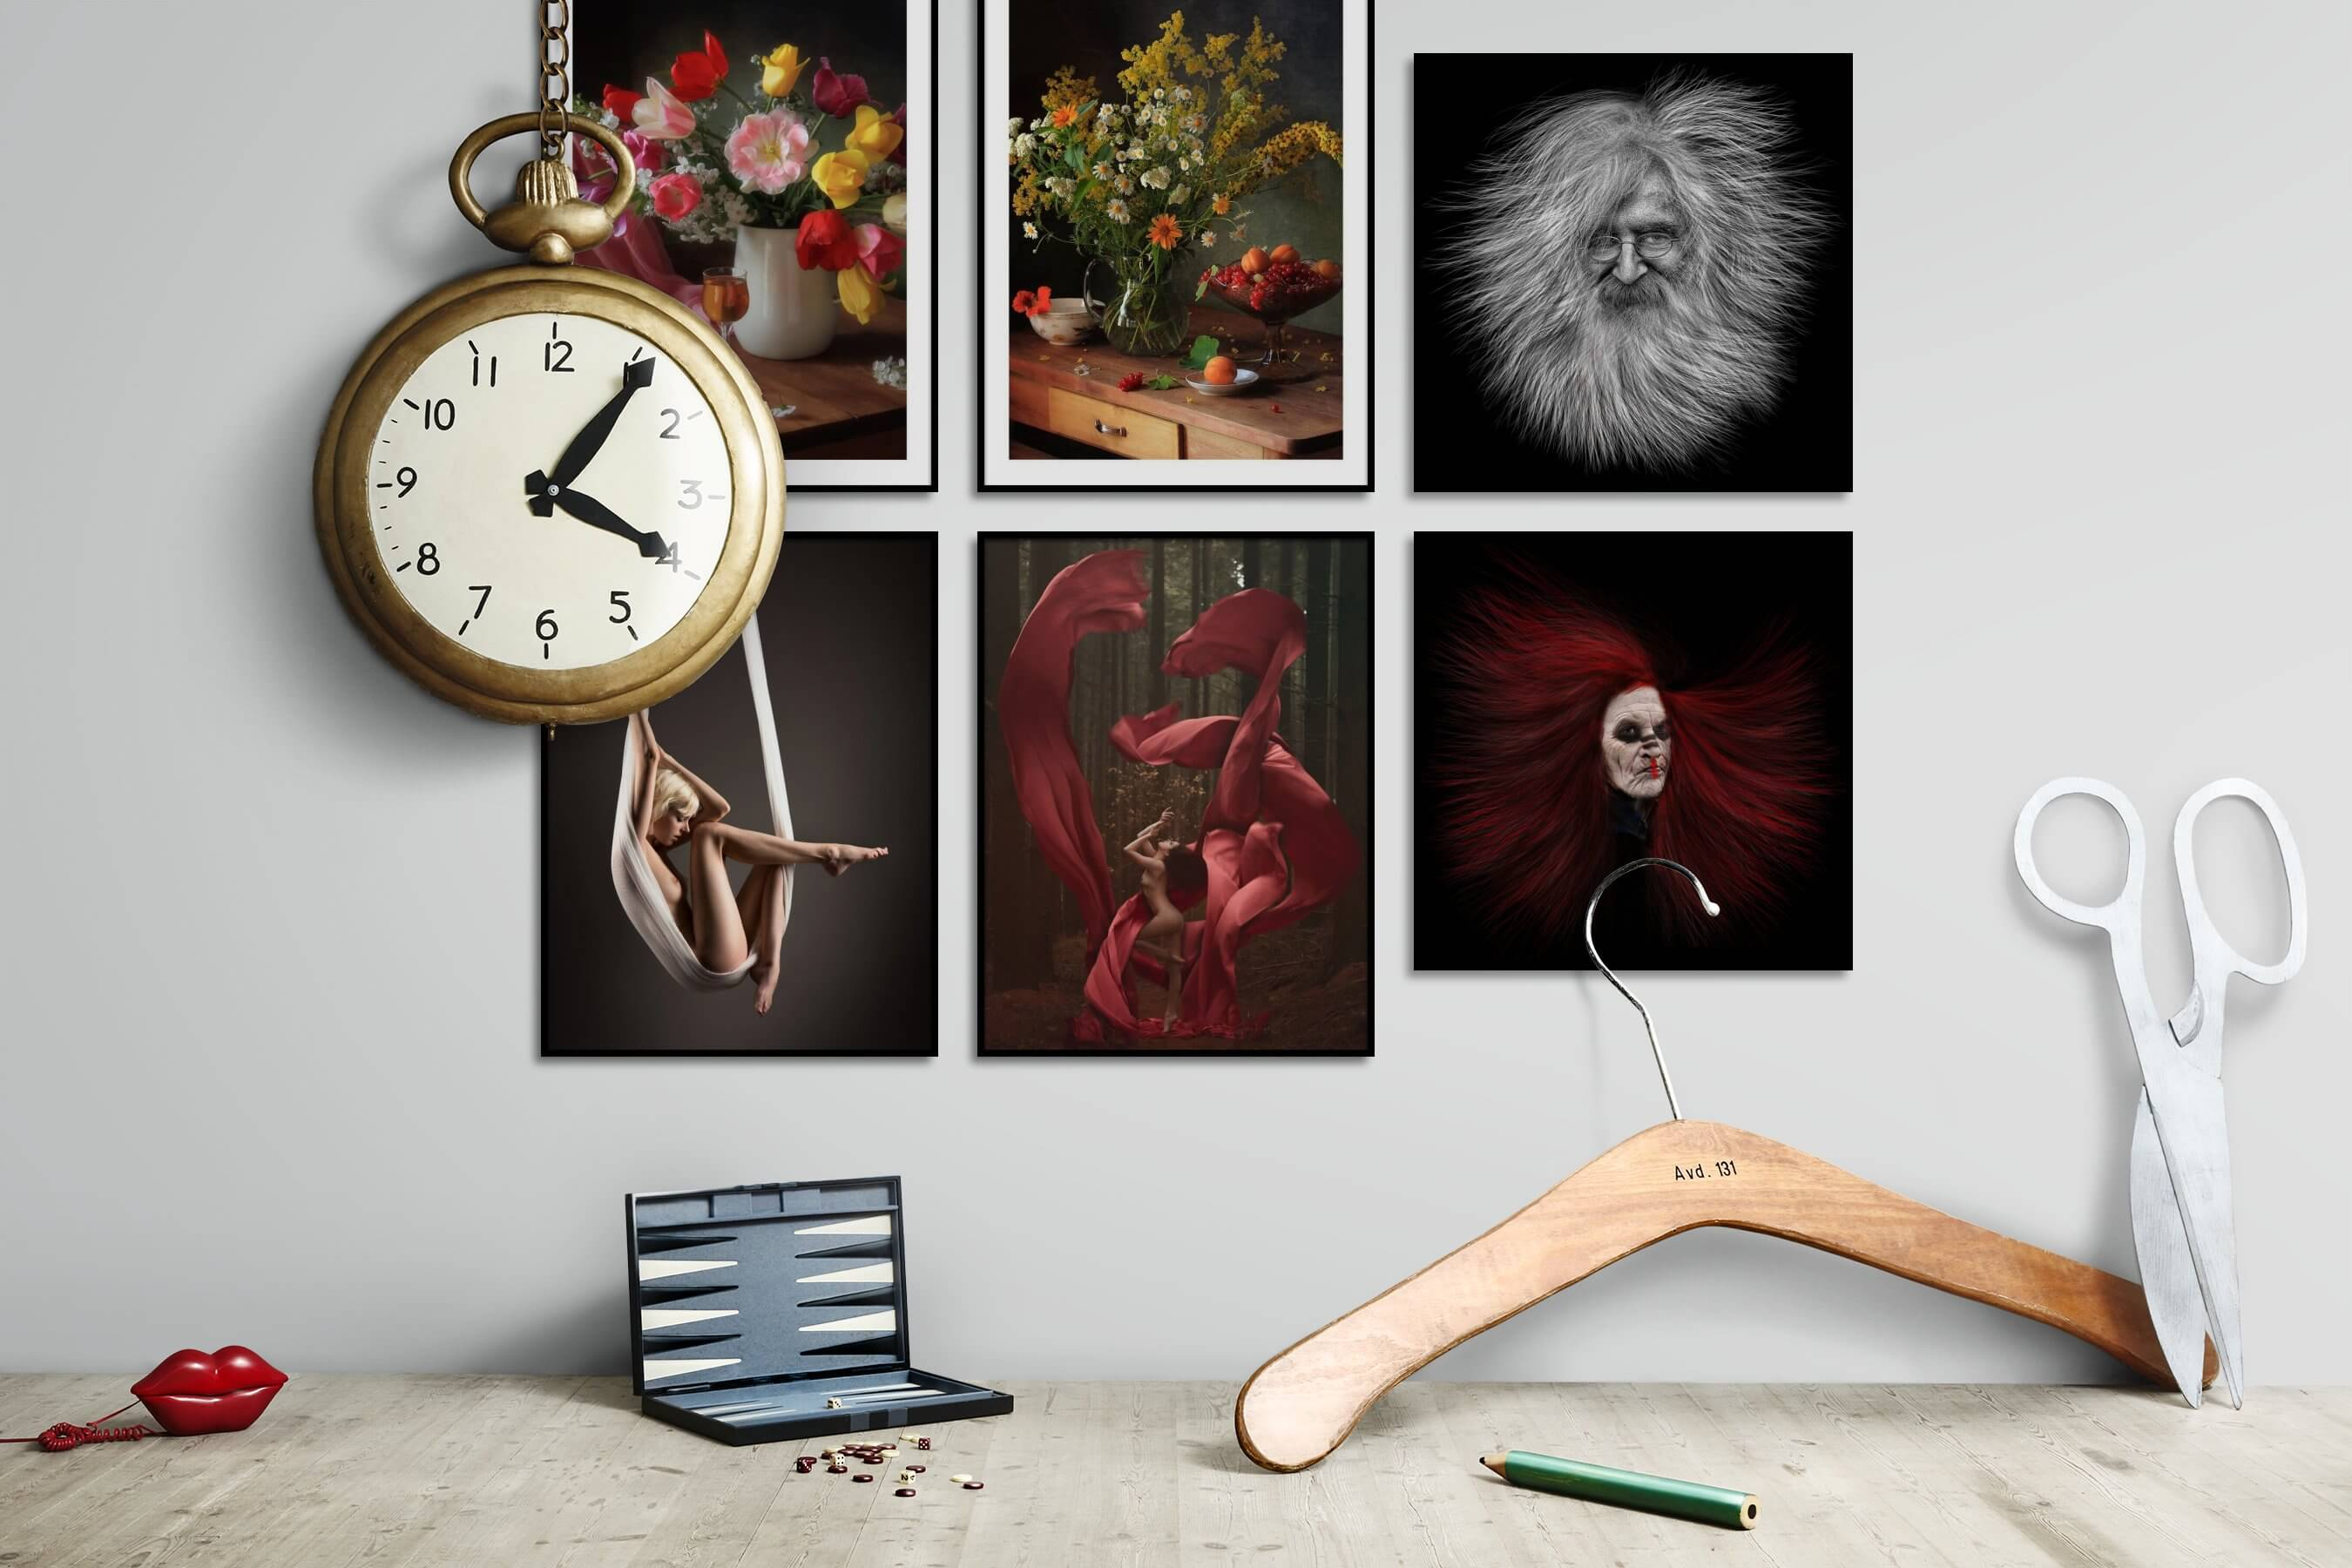 Gallery wall idea with six framed pictures arranged on a wall depicting Flowers & Plants, Vintage, Fashion & Beauty, Bold, Nature, Artsy, Black & White, Dark Tones, and For the Minimalist